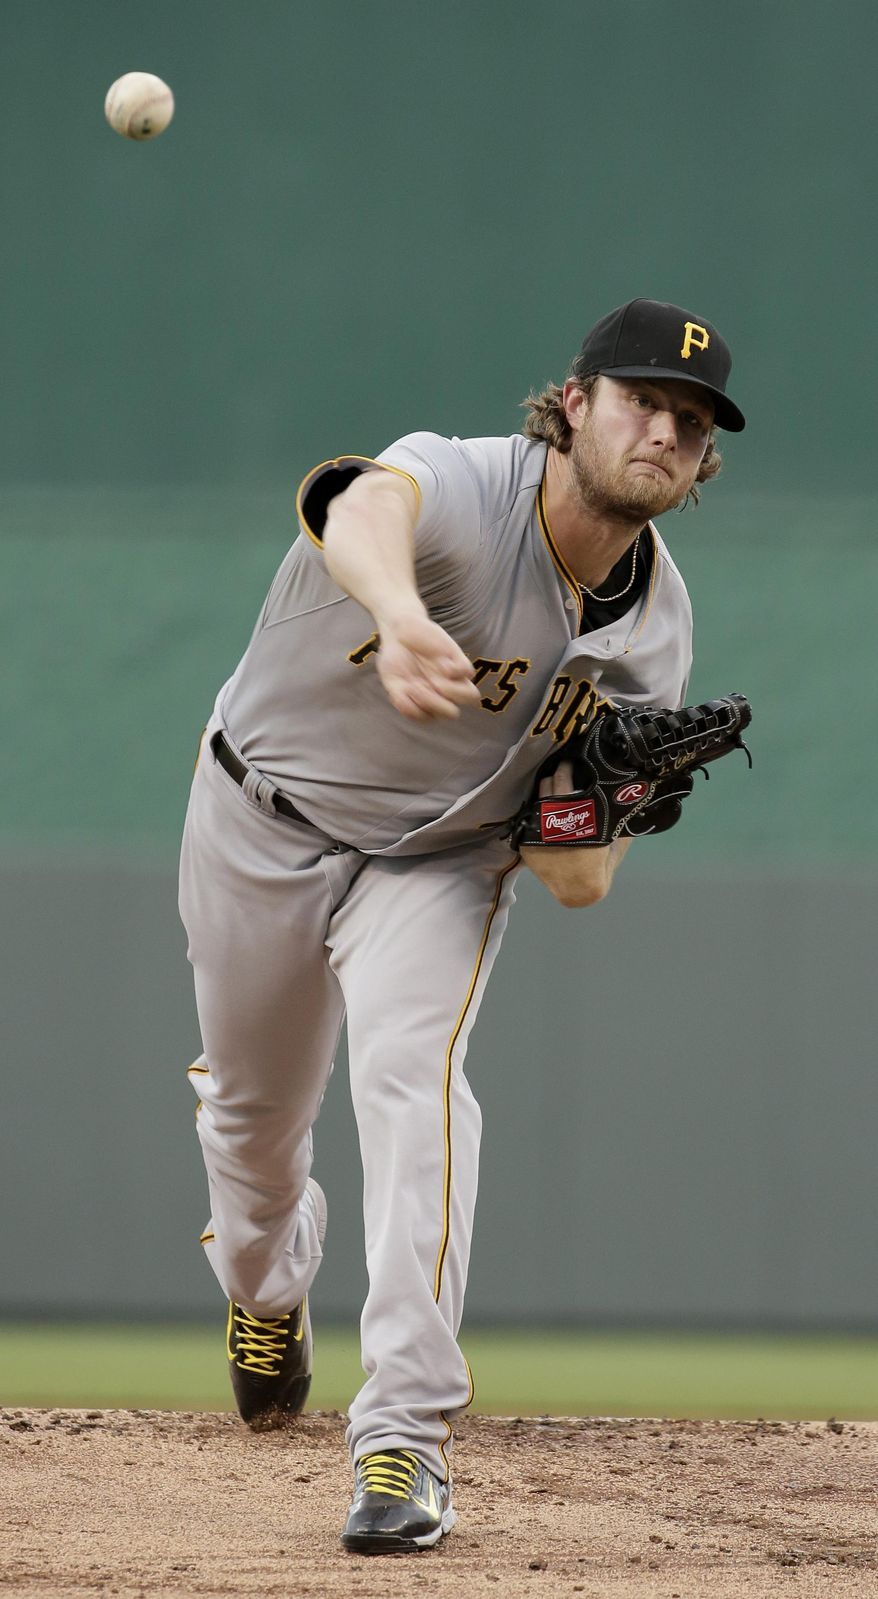 Pittsburgh Pirates starting pitcher Gerrit Cole throws during the first inning of a baseball game against the Kansas City Royals Tuesday, July 21, 2015, in Kansas City, Mo. (AP Photo/Charlie Riedel)